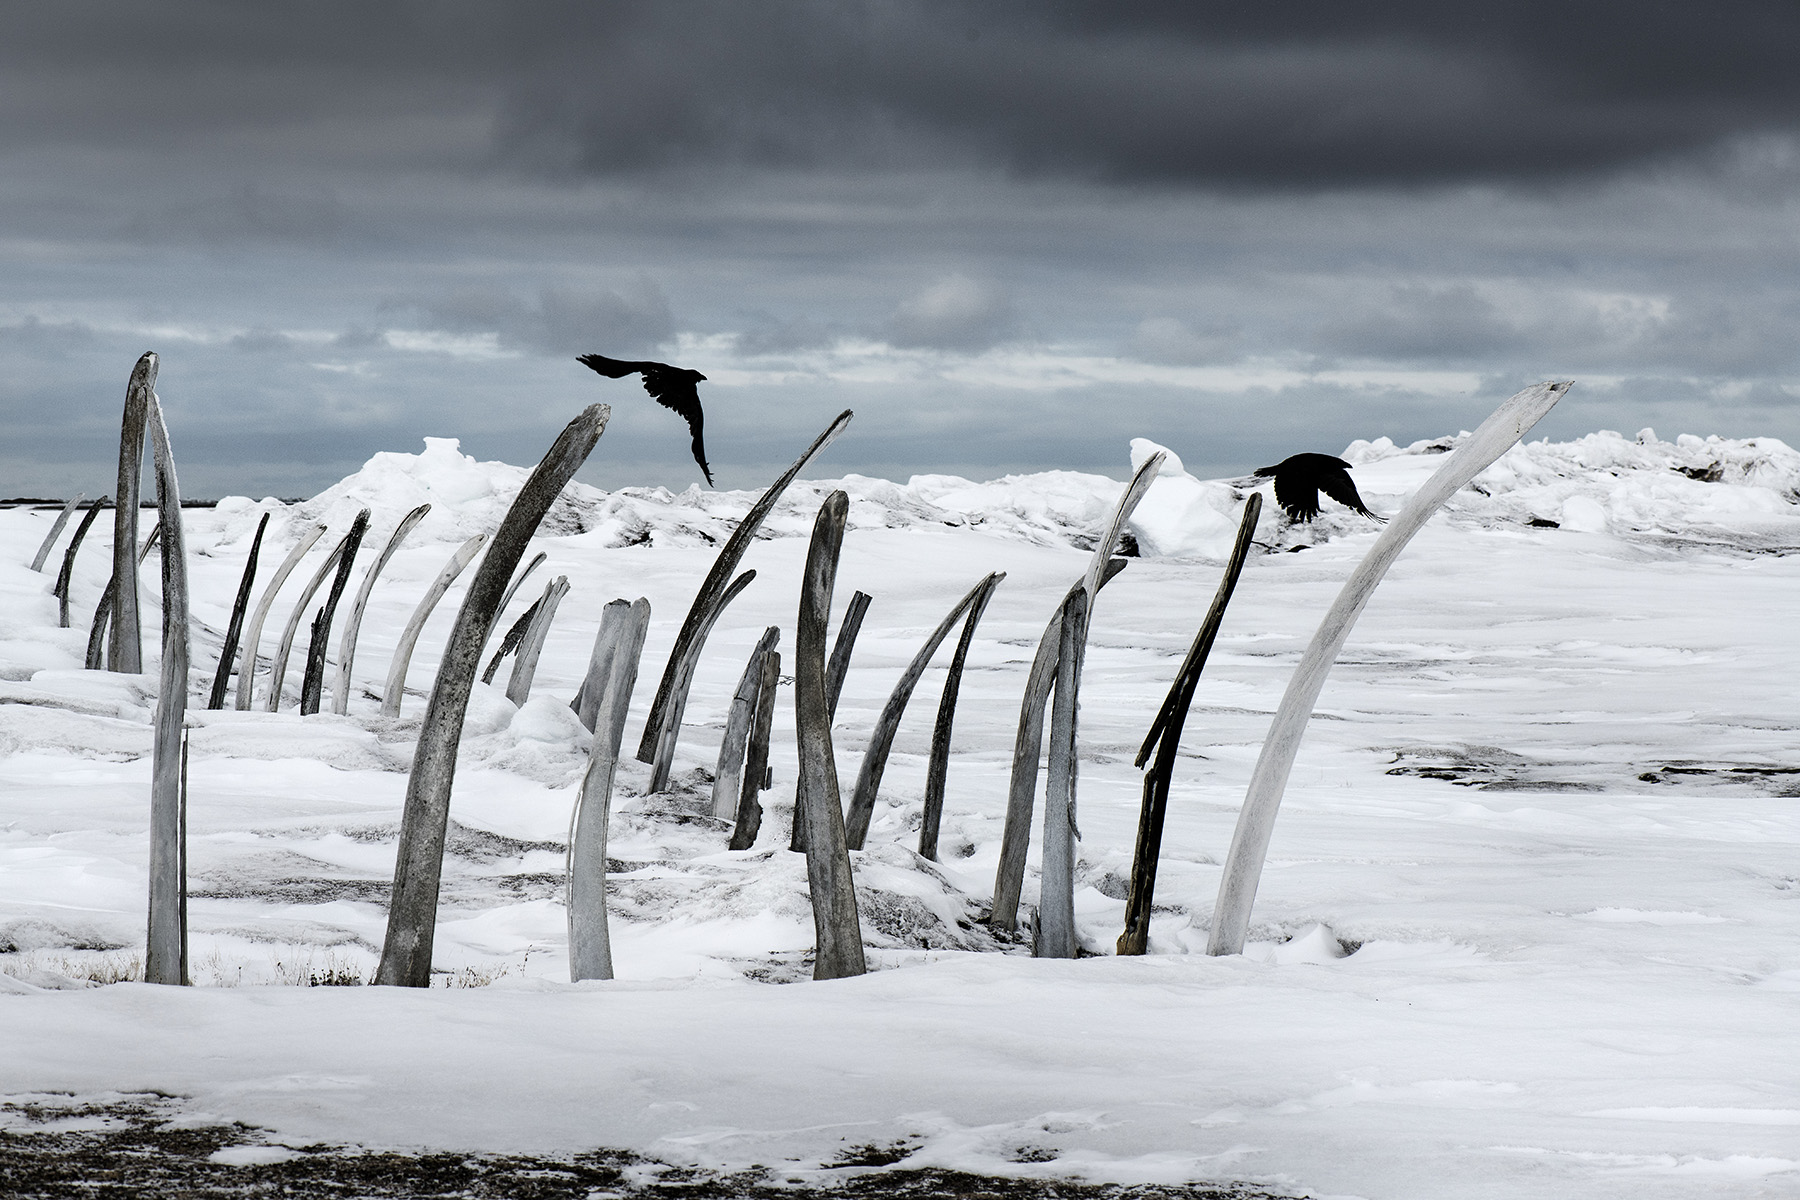 USA, Alaska, Tikigaq (Point Hope), May 2018